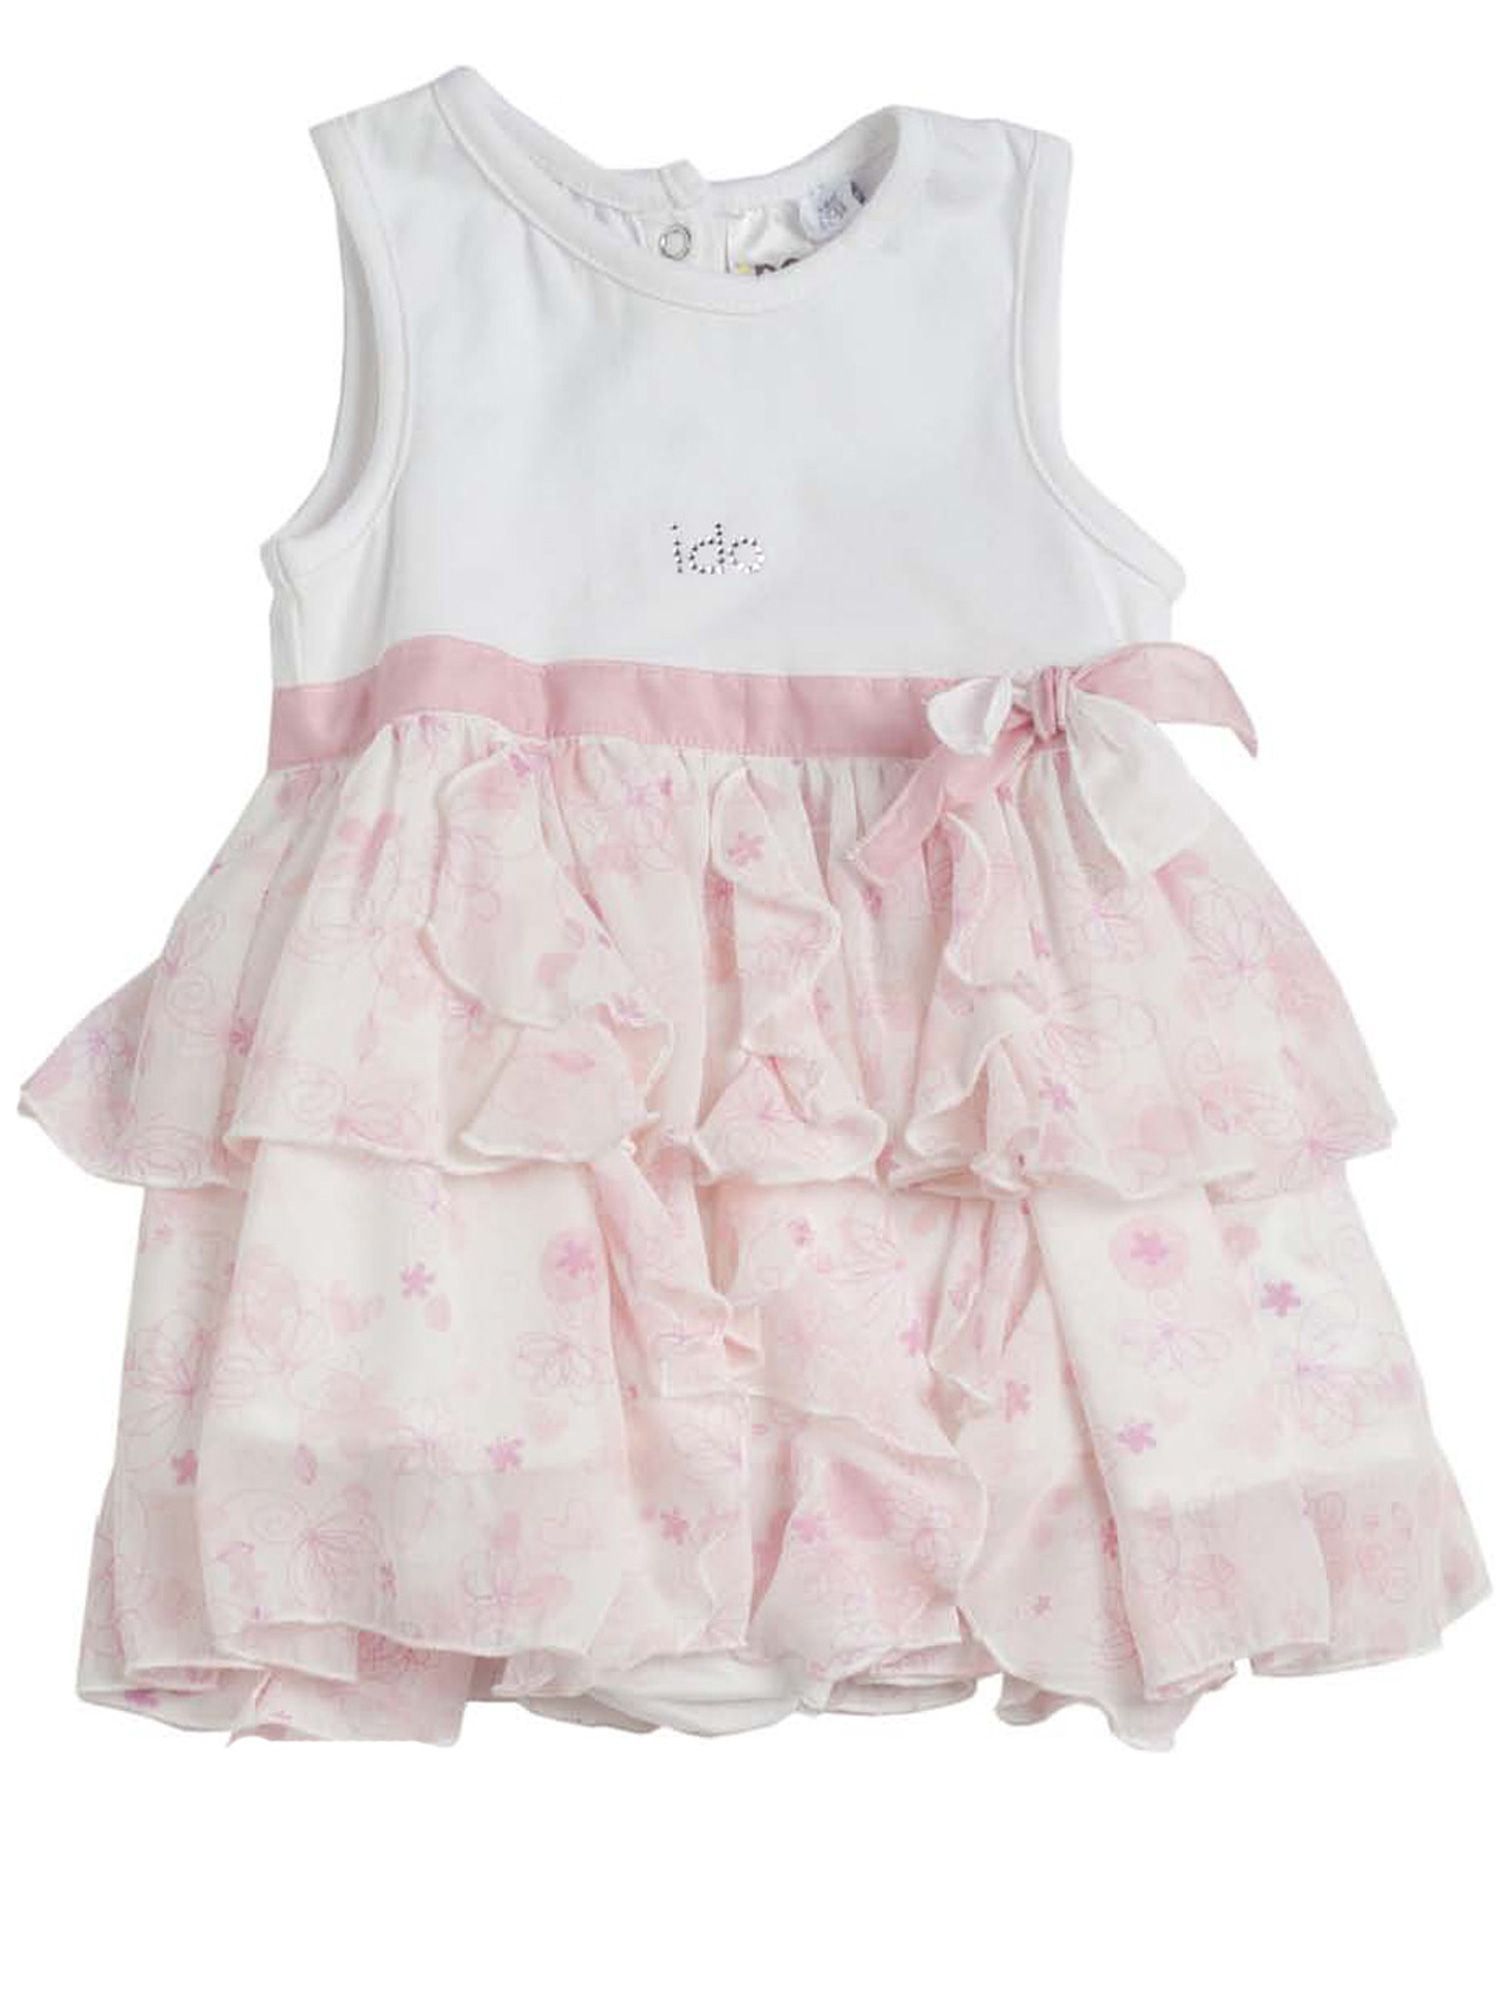 Baby girls pink chiffon dress with knickers